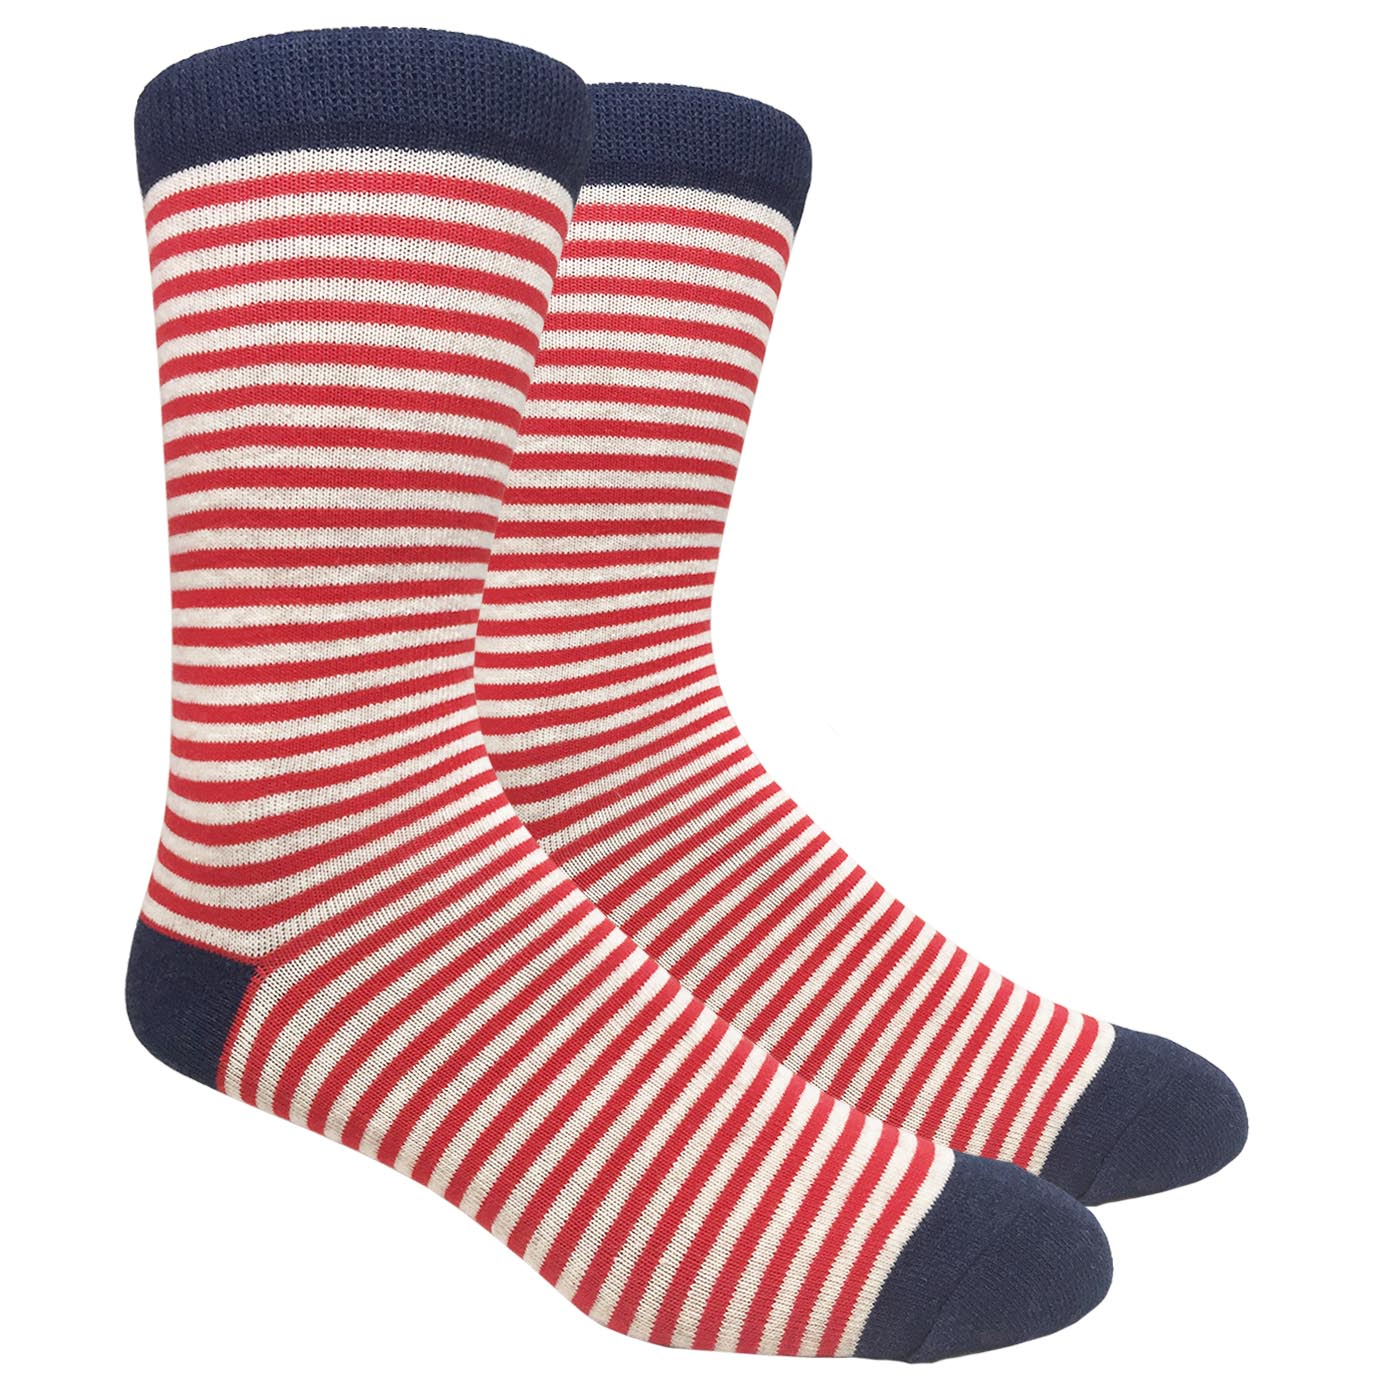 FineFit Black Label Stripe Socks - Tan & Red